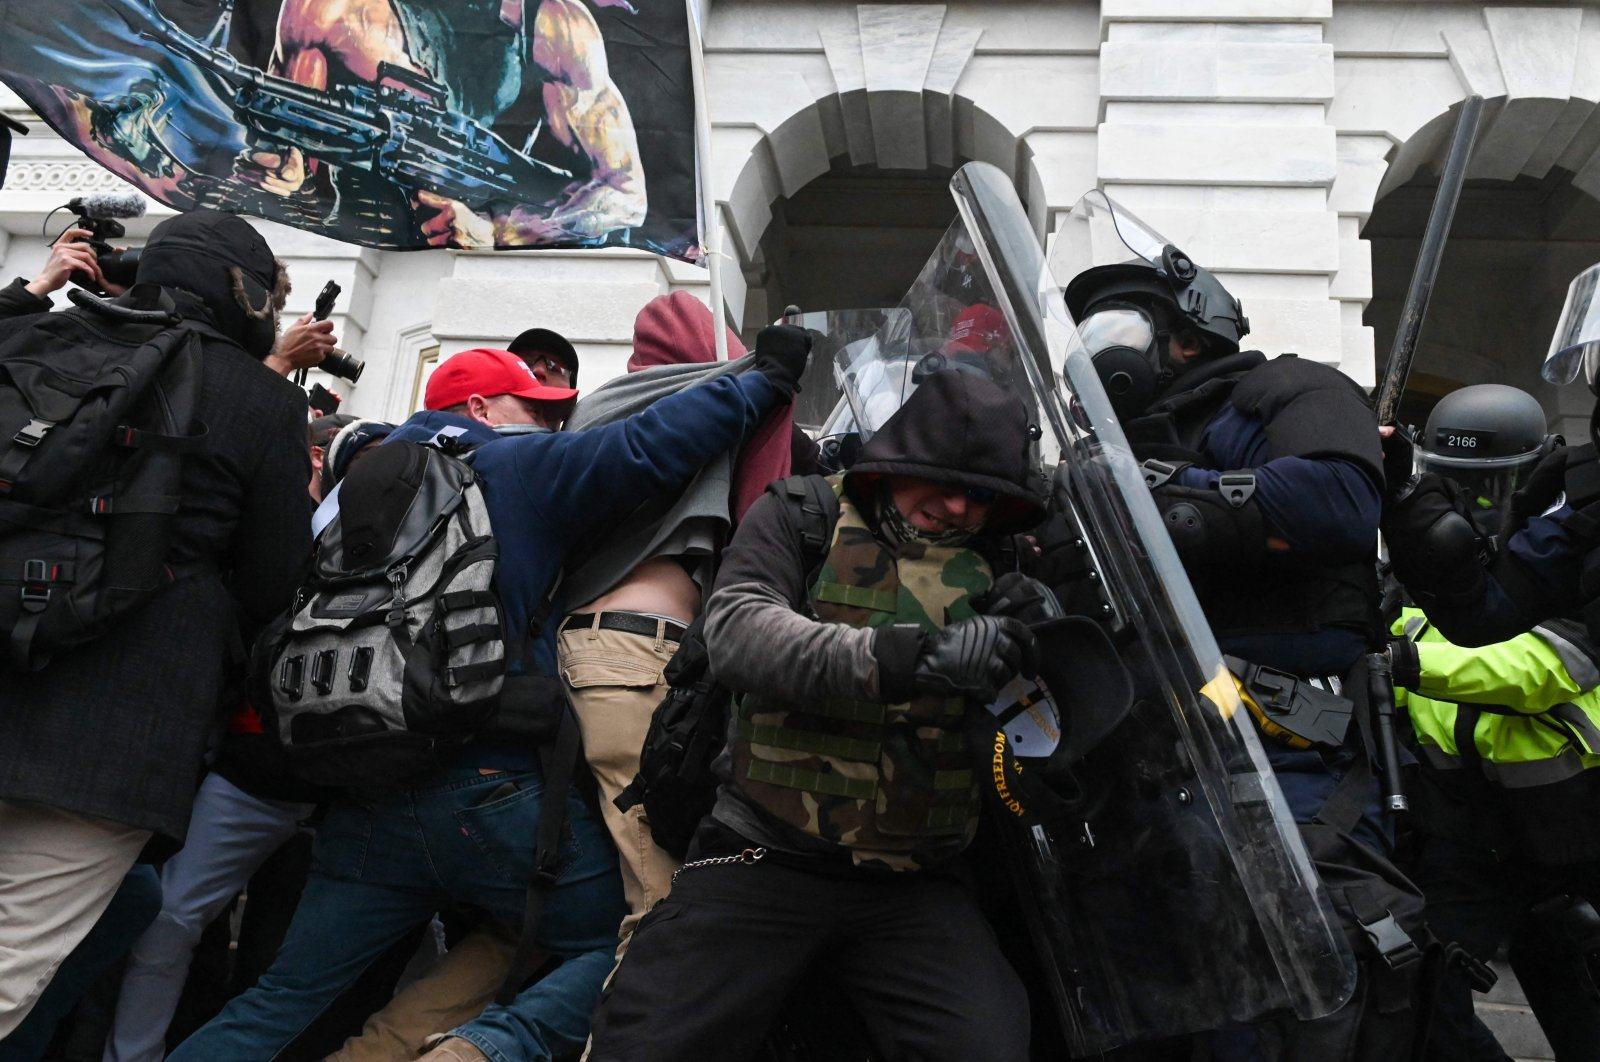 Police push back a crowd of supporters of U.S. President Donald Trump after they stormed the Capitol building in Washington, D.C., U.S., Jan. 6, 2021. (AFP Photo)